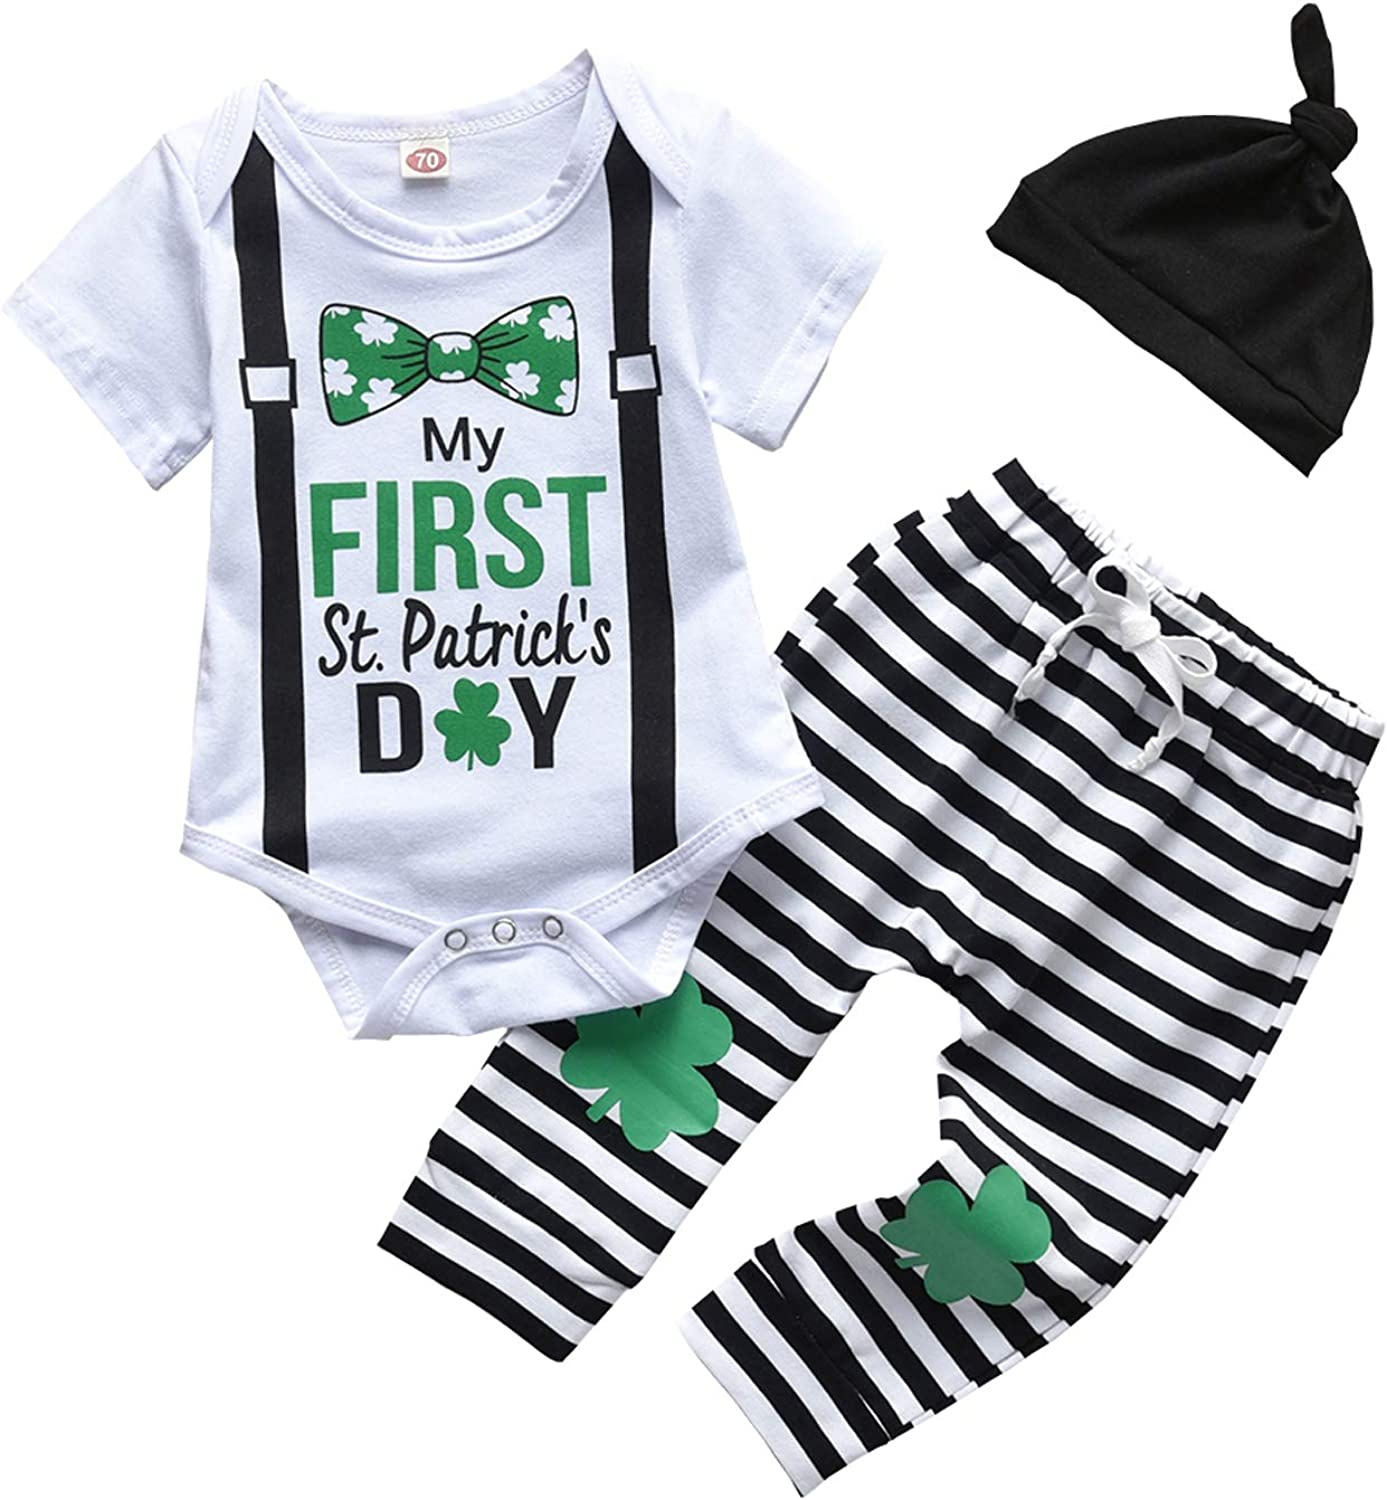 Qpap My First St.Patrick's/Easter Day Clothes Infant Baby Boy Ro